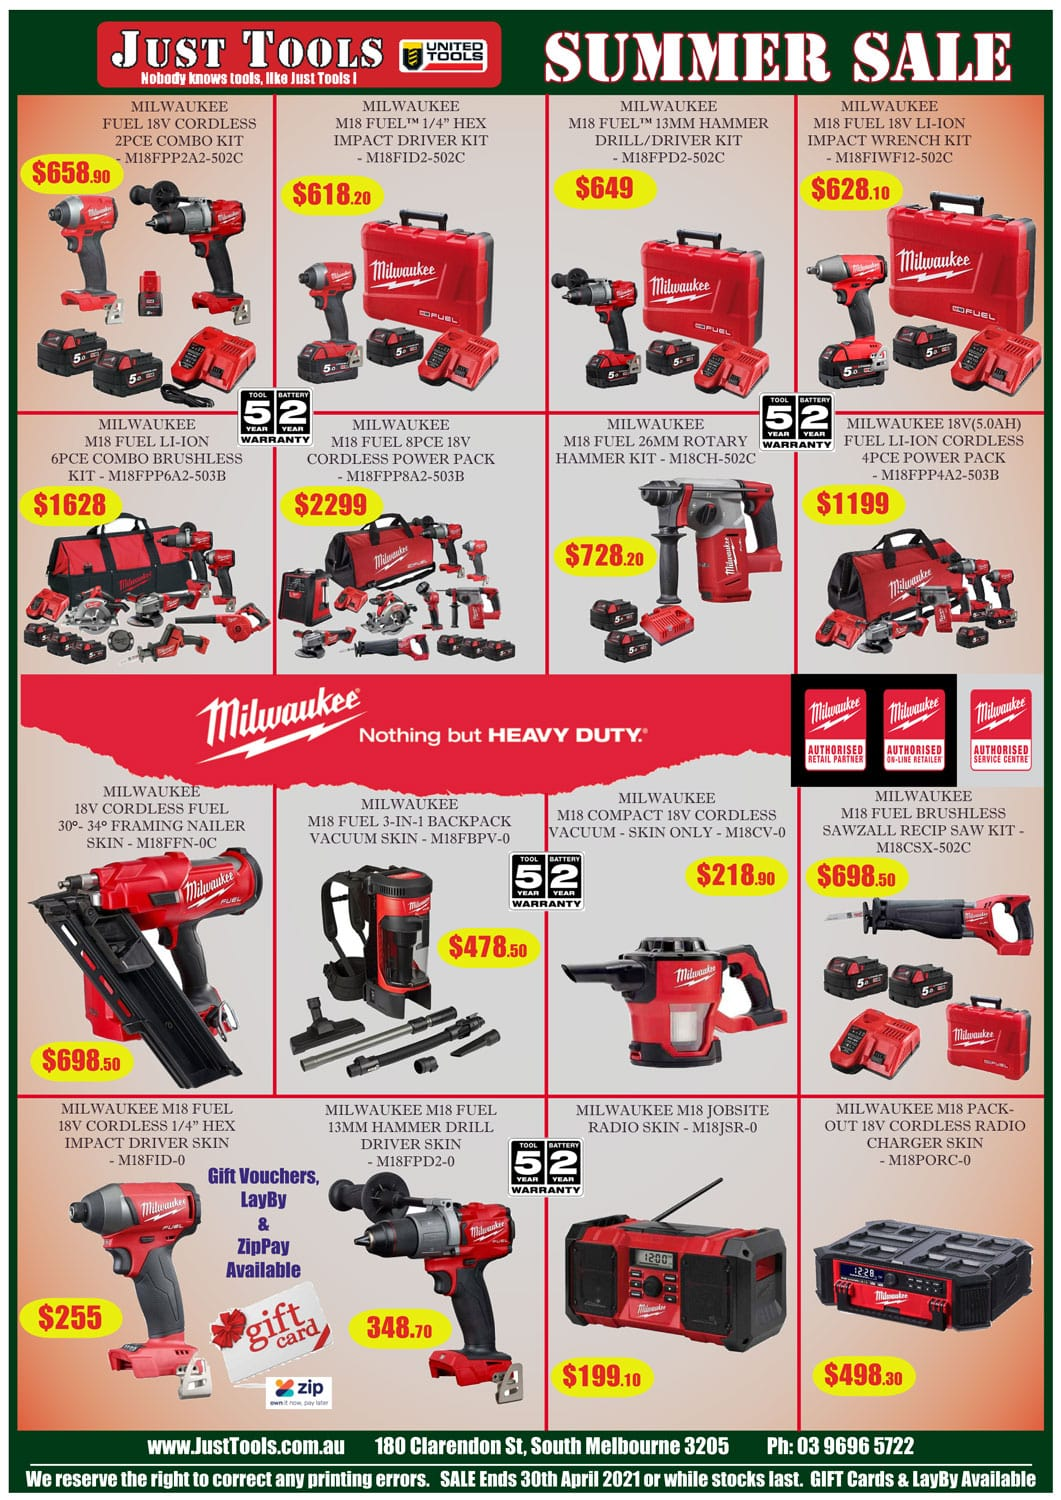 just-tools-summer-sale-page-7c-min.jpg